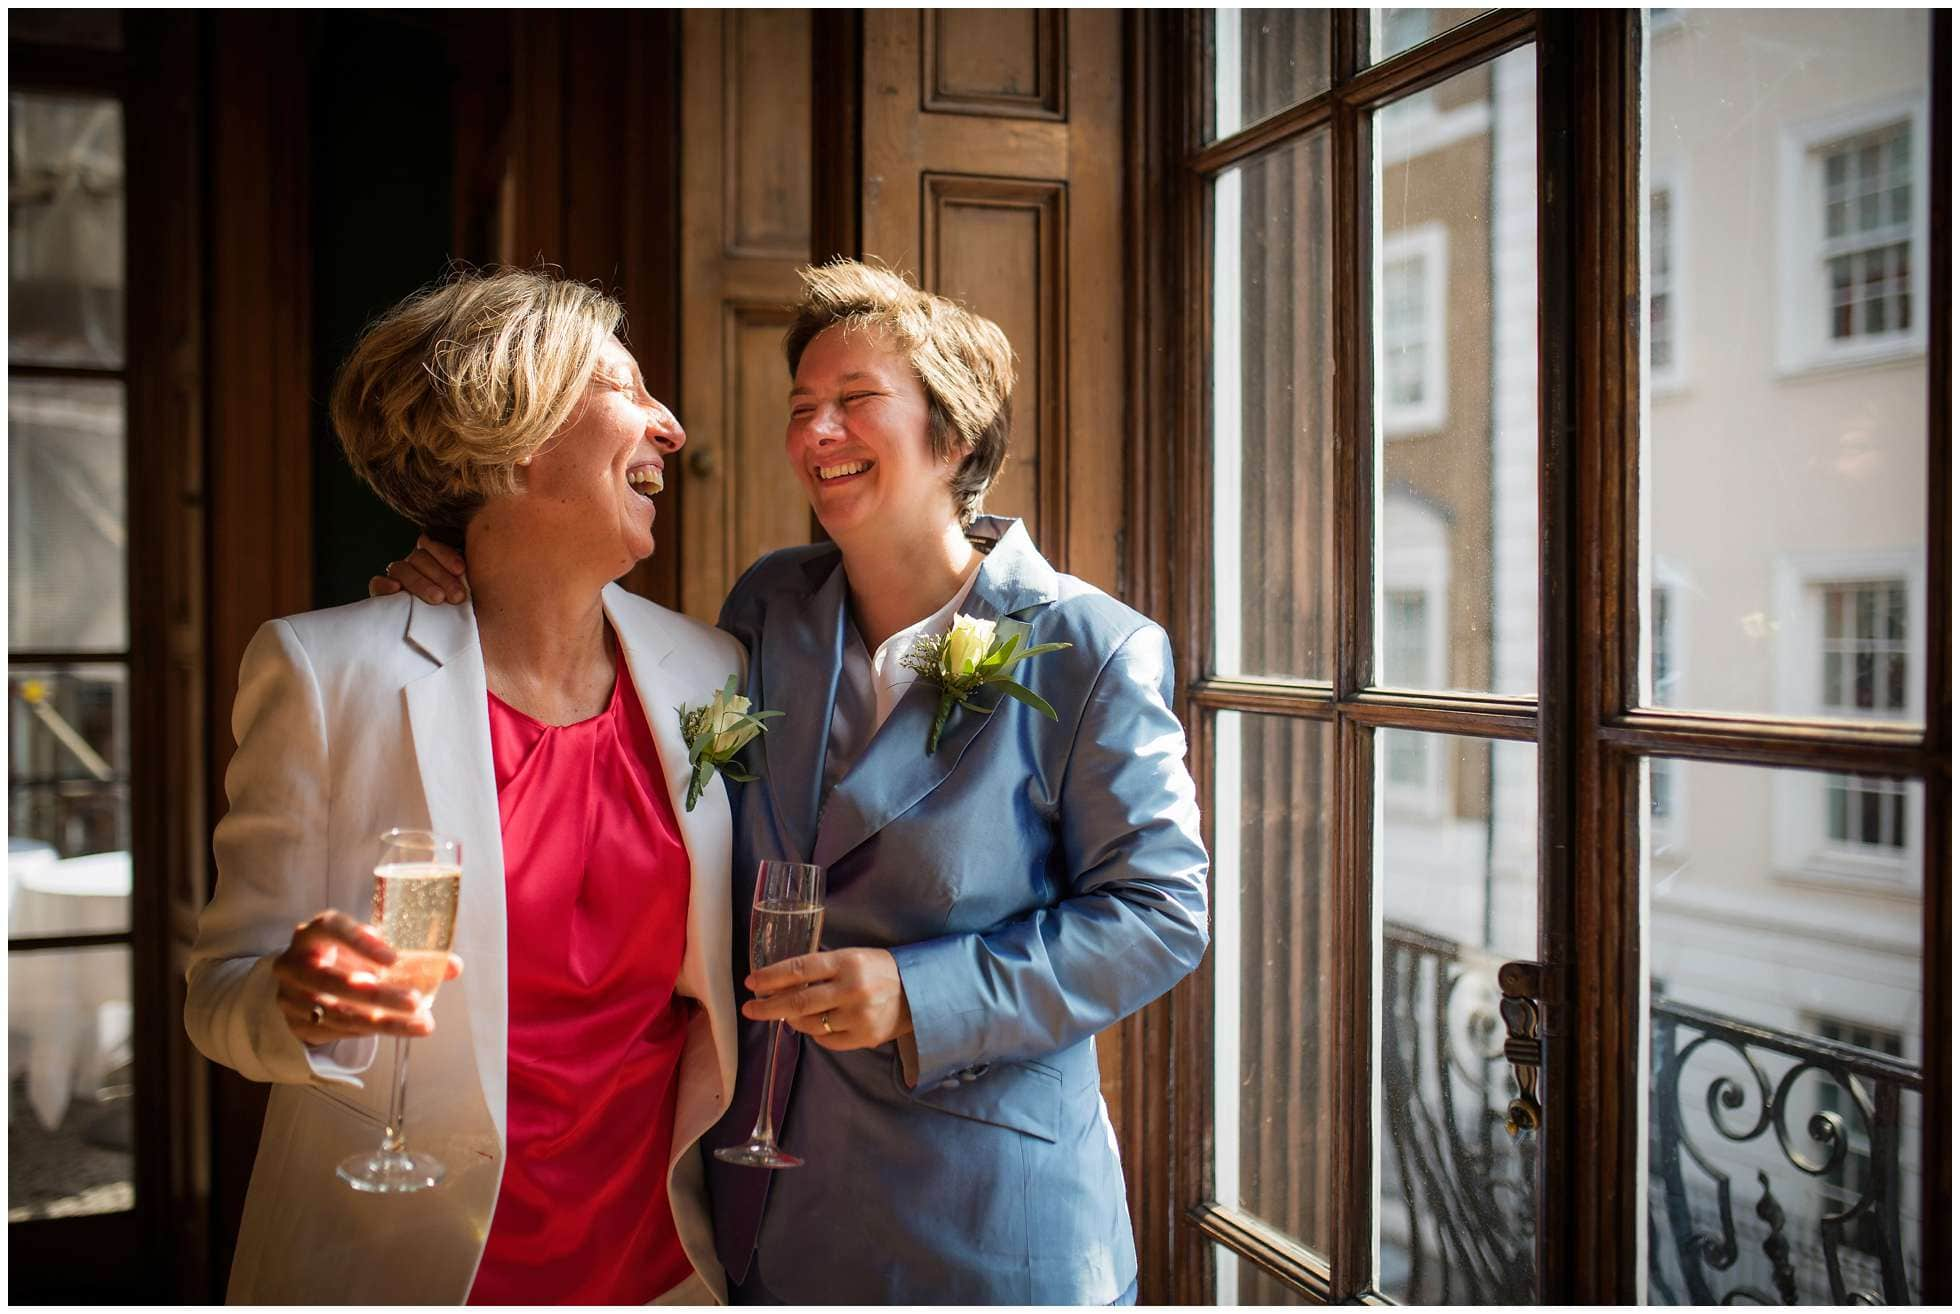 Relaxed wedding photography at the University Women's Club! Judith and Deborah in fits of laughter!